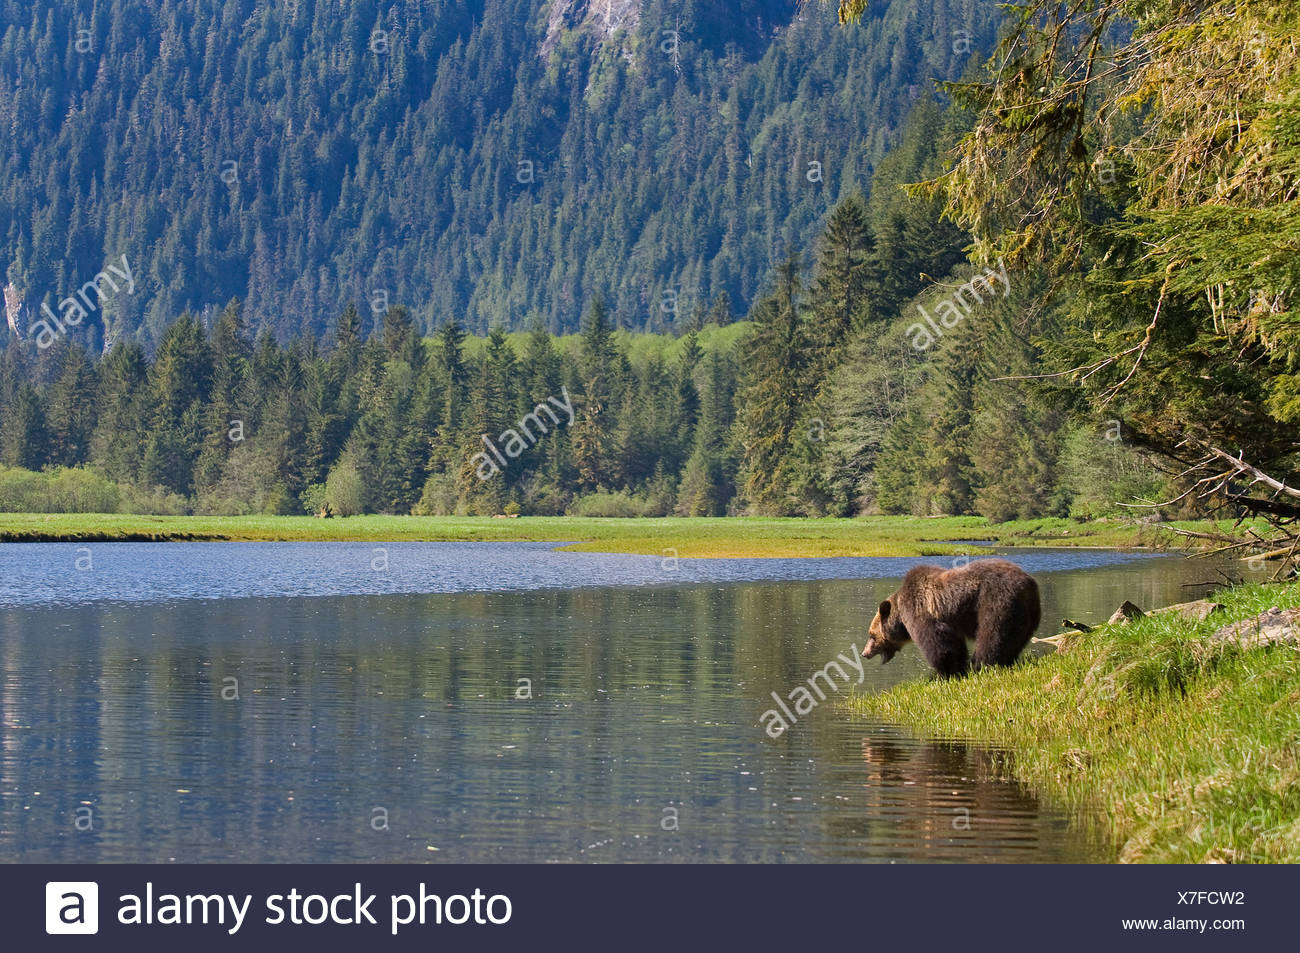 Grizzly Bear (Ursus arctos horribilis) at edge of a river. Khutzeymateen Grizzly Bear Sanctuary North of Prince Rupert British C - Stock Image